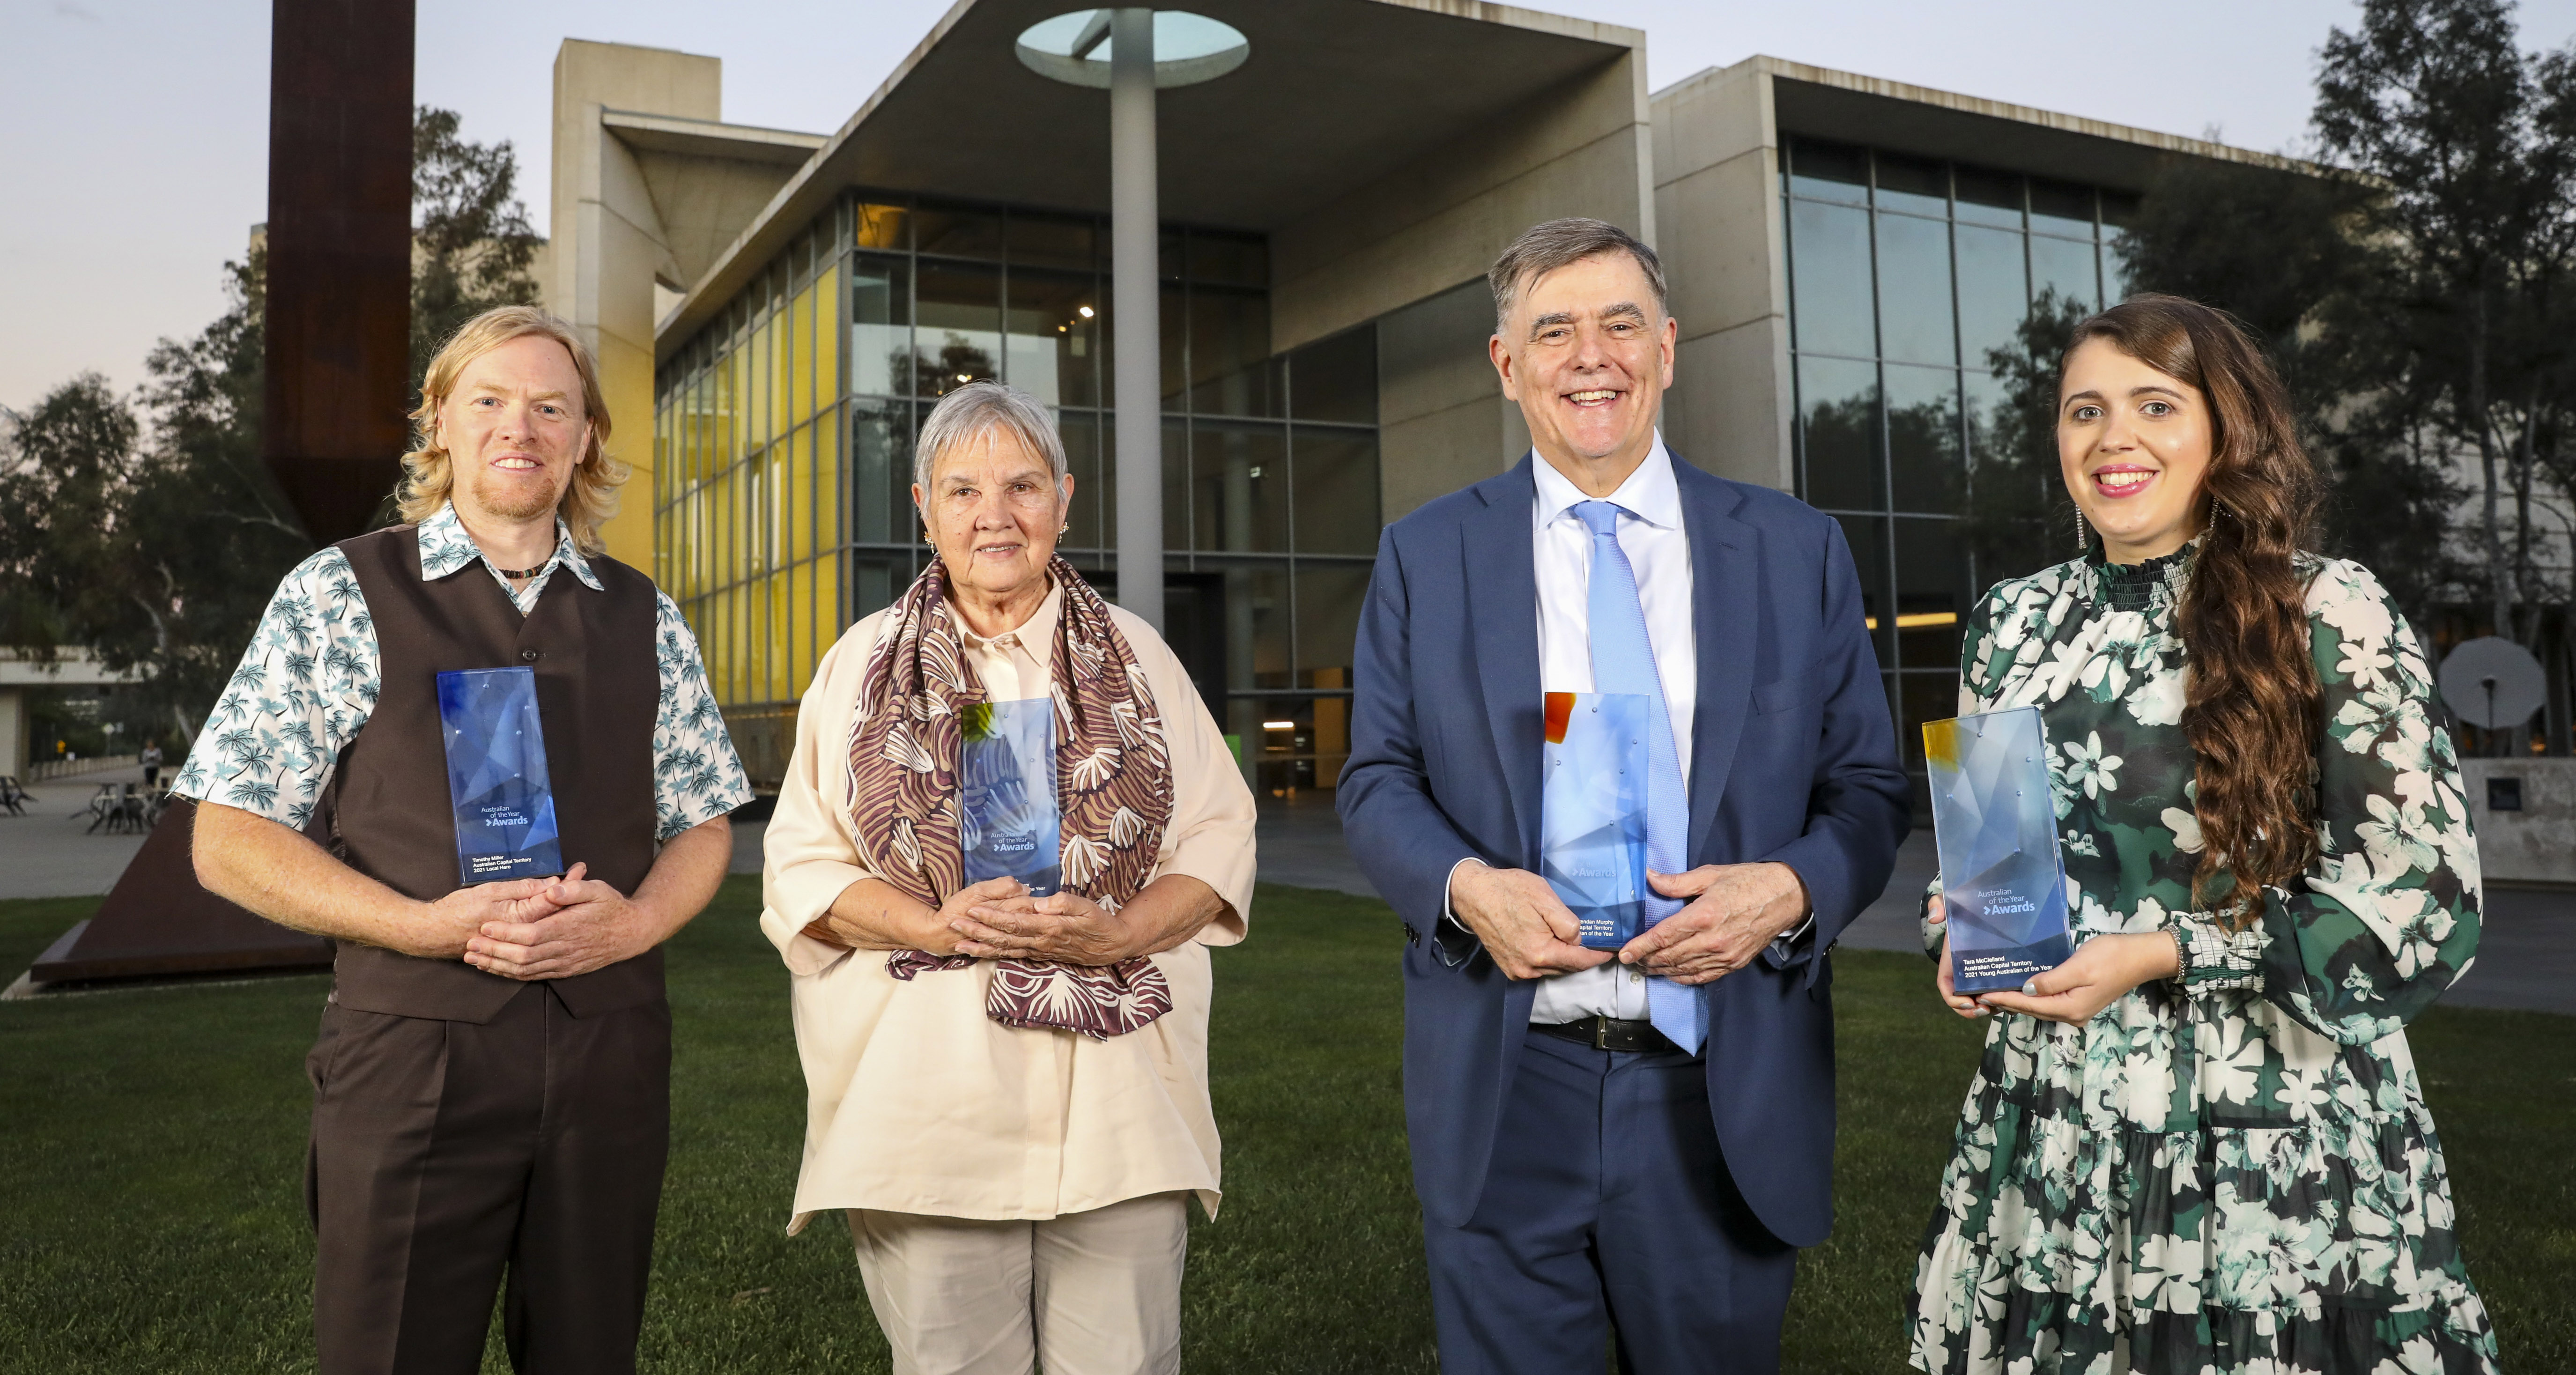 The four inspirational Canberrans – Timothy Miller, Patricia Anderson AO, Professor Brendan Murphy and Tara McClelland.